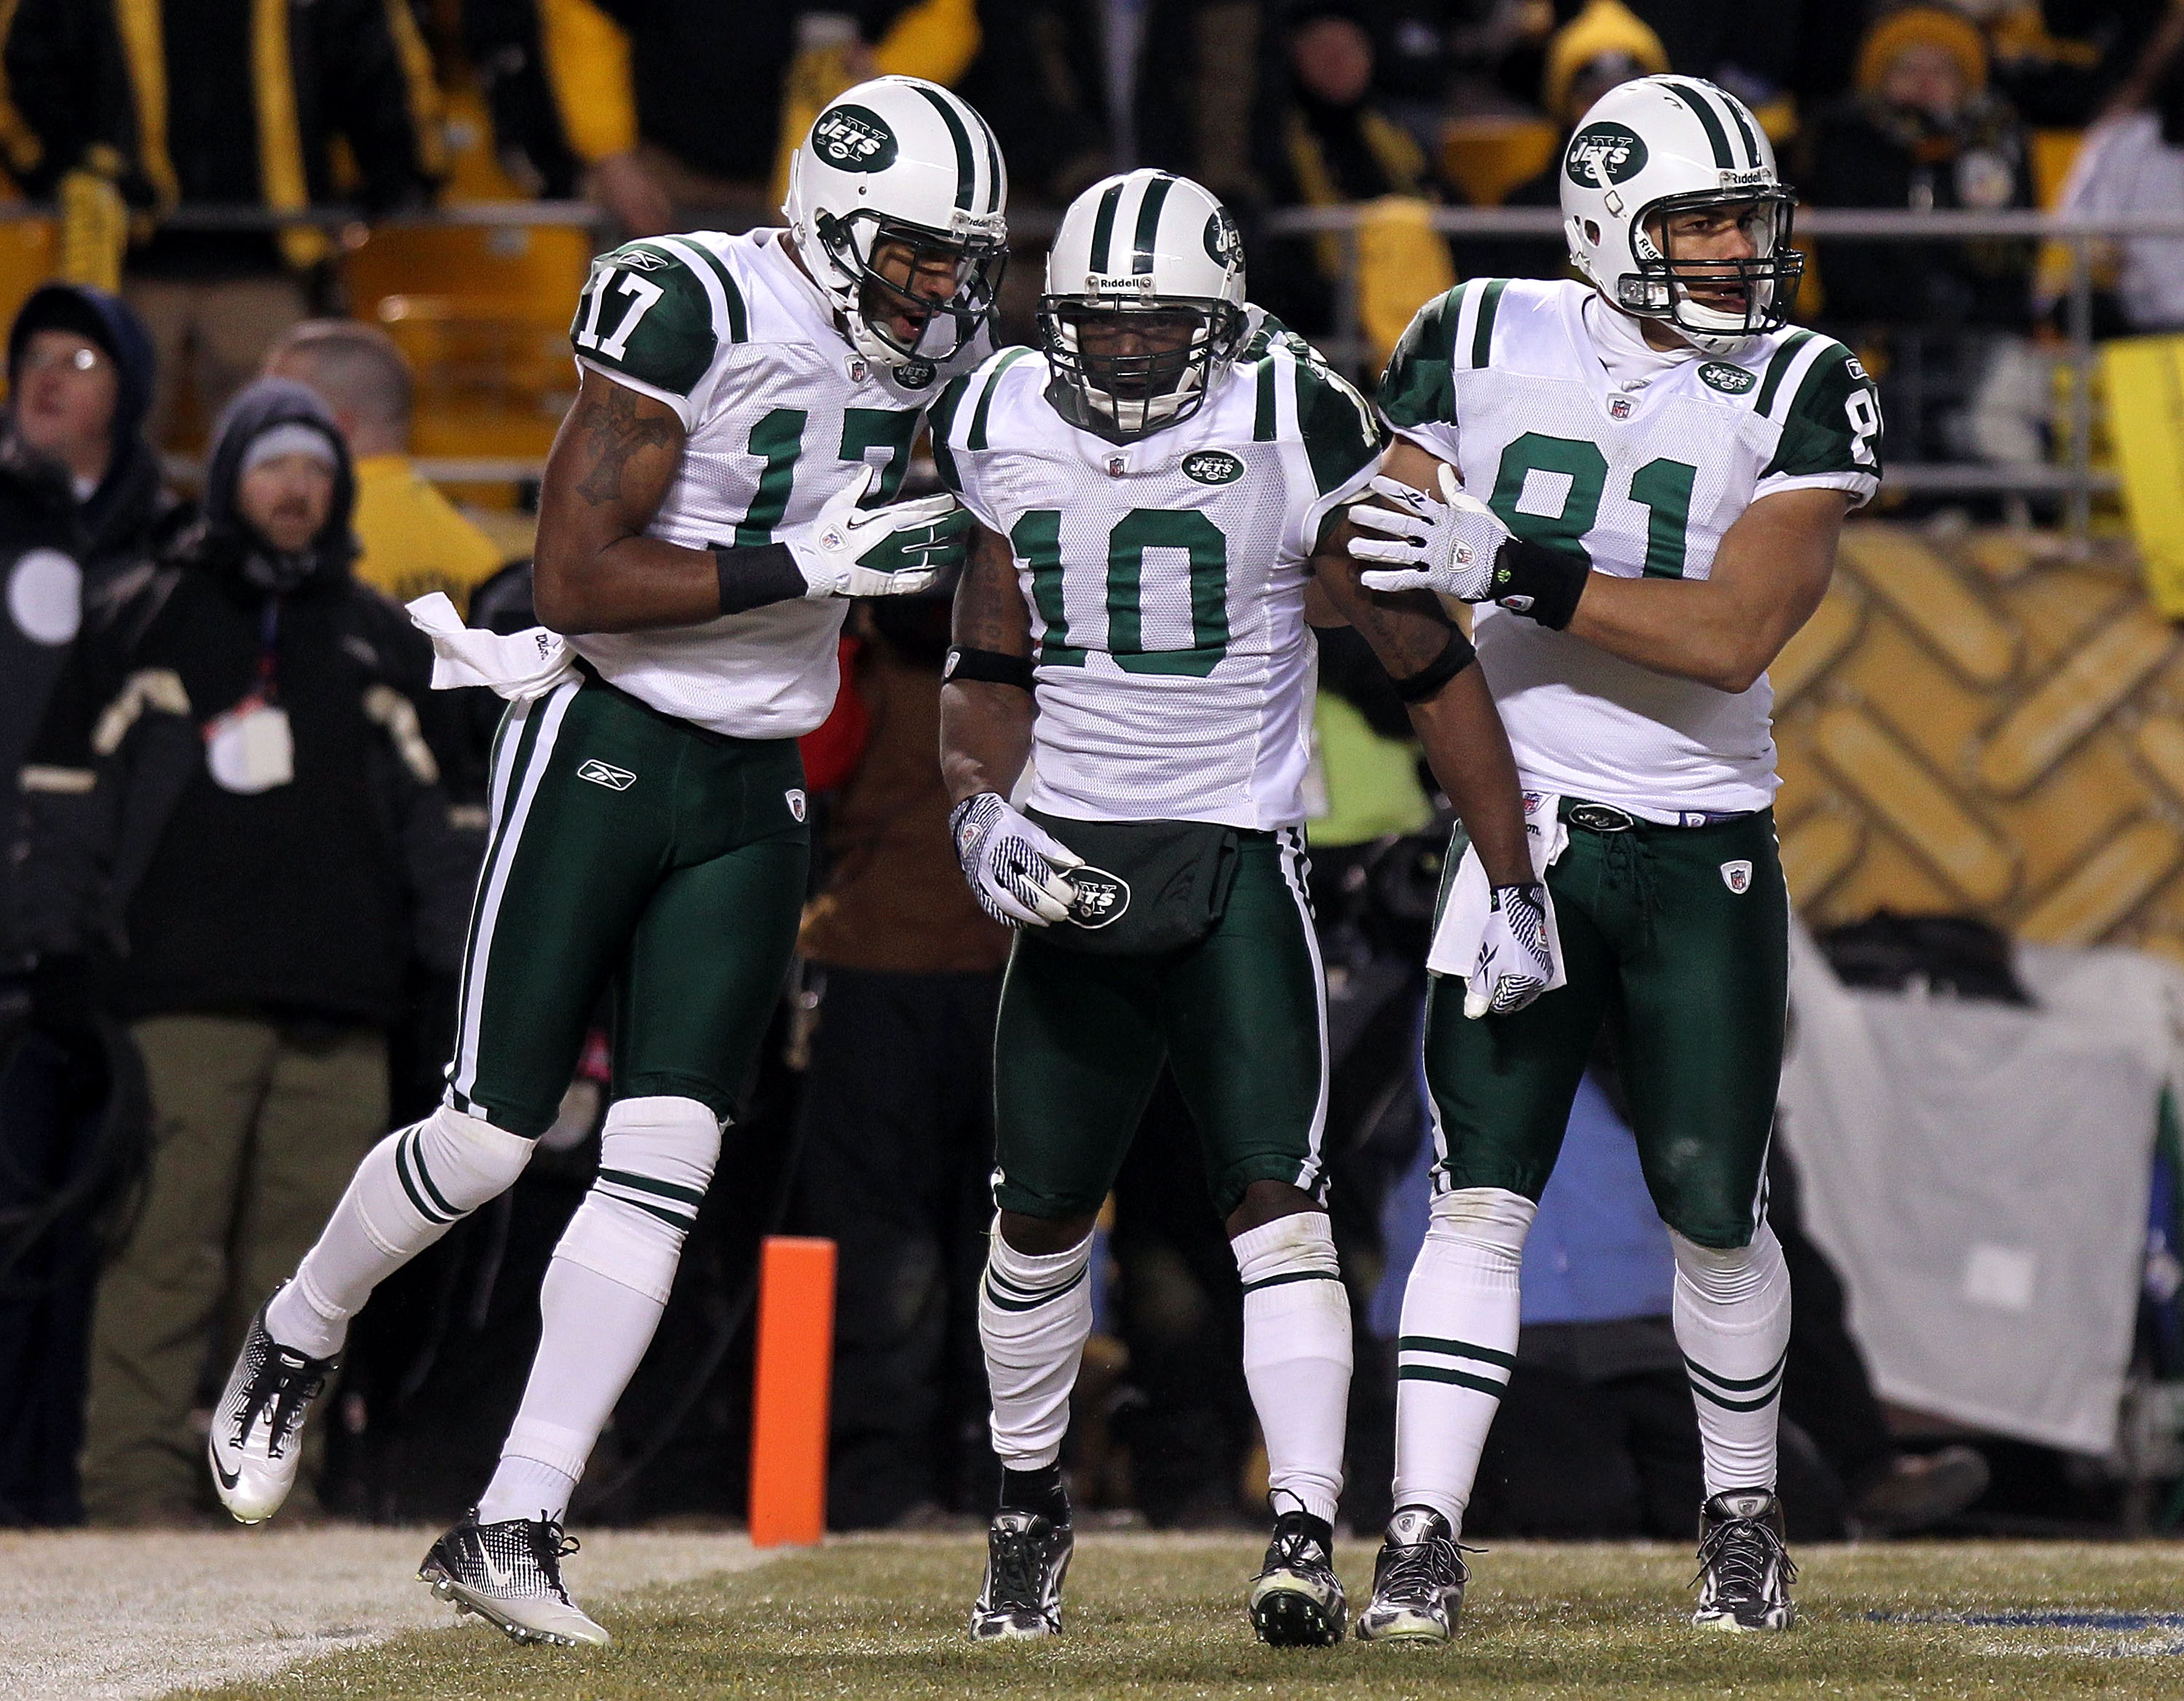 PITTSBURGH, PA - JANUARY 23:  Santonio Holmes #10 of the New York Jets celebrates with teammates Braylon Edwards #17 and Dustin Keller #81 after he scored a third quarter touchdown against the Pittsburgh Steelers during the 2011 AFC Championship game at H